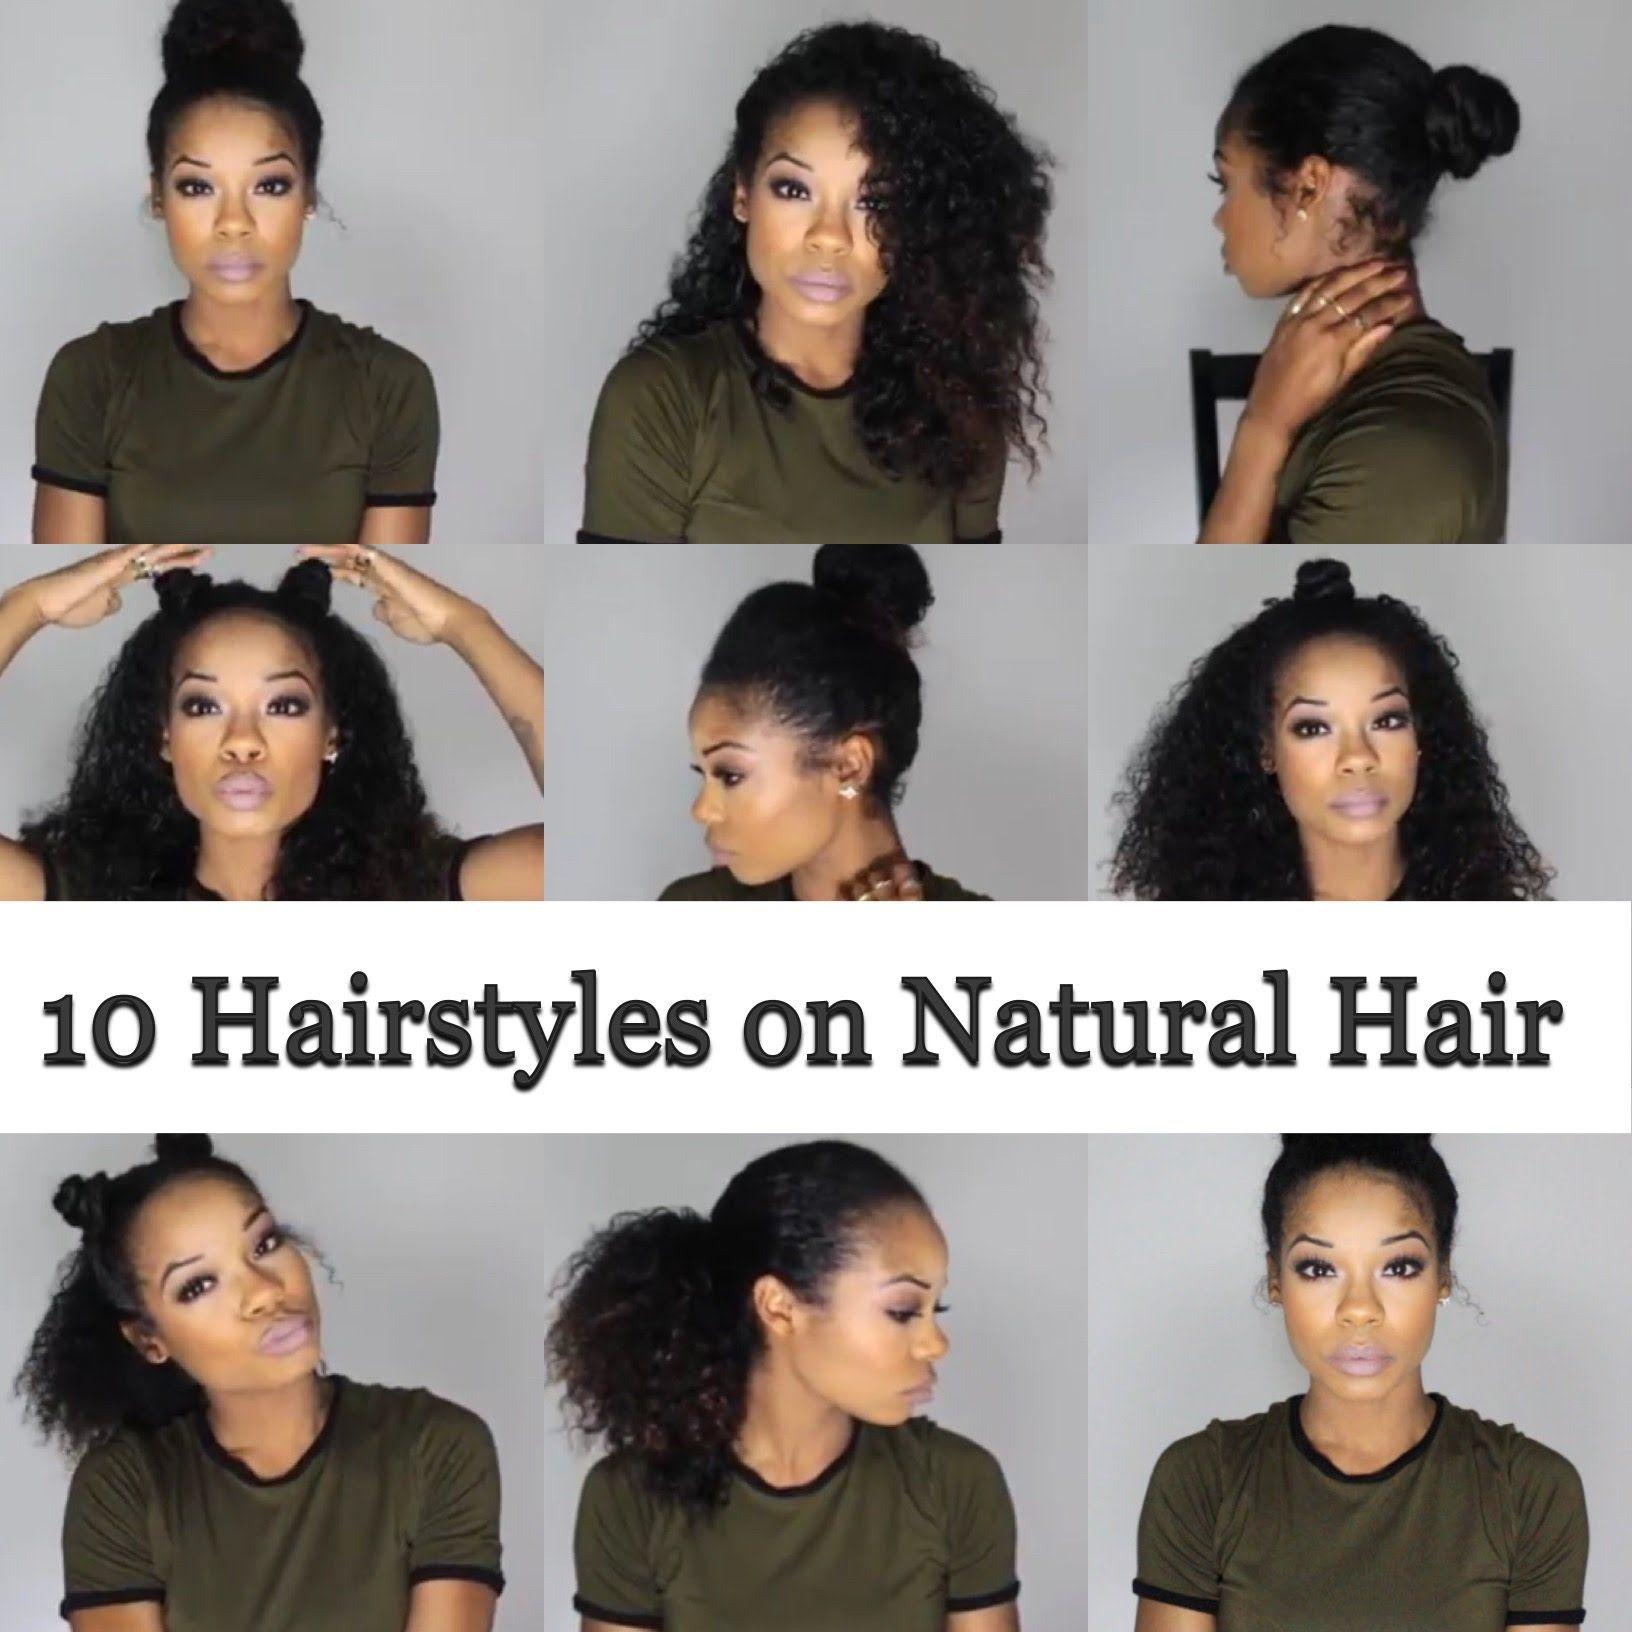 10 Quick And Easy Hairstyles On Natural Hair 3b 3c Natural Hair Styles Easy Natural Hair Styles Curly Hair Styles Naturally